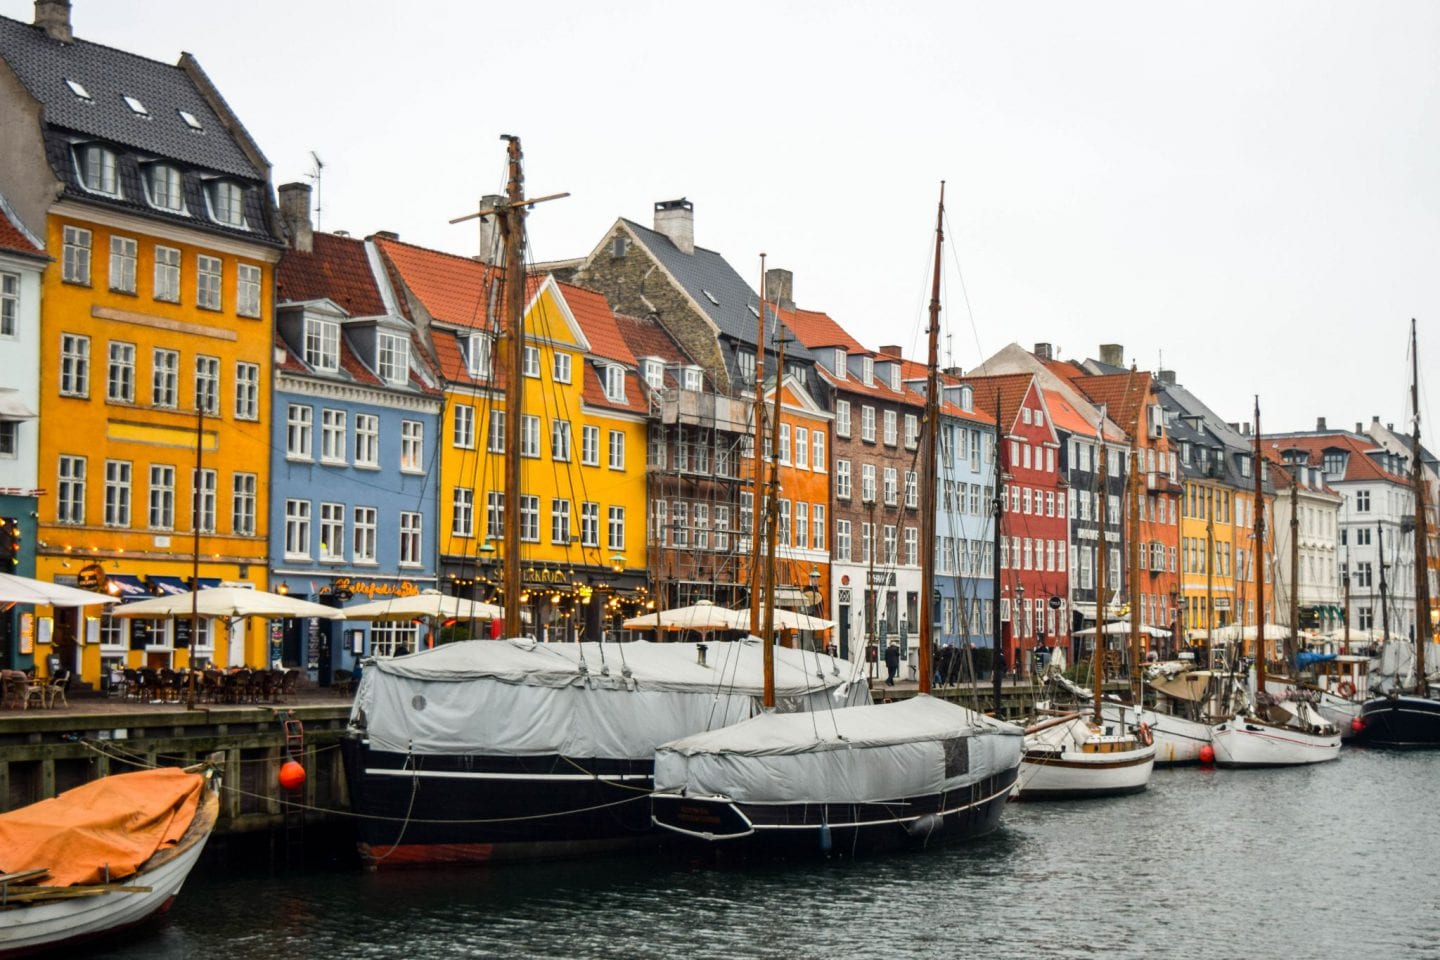 10 things Denmark does better than other countries (and 1 thing it doesn't)